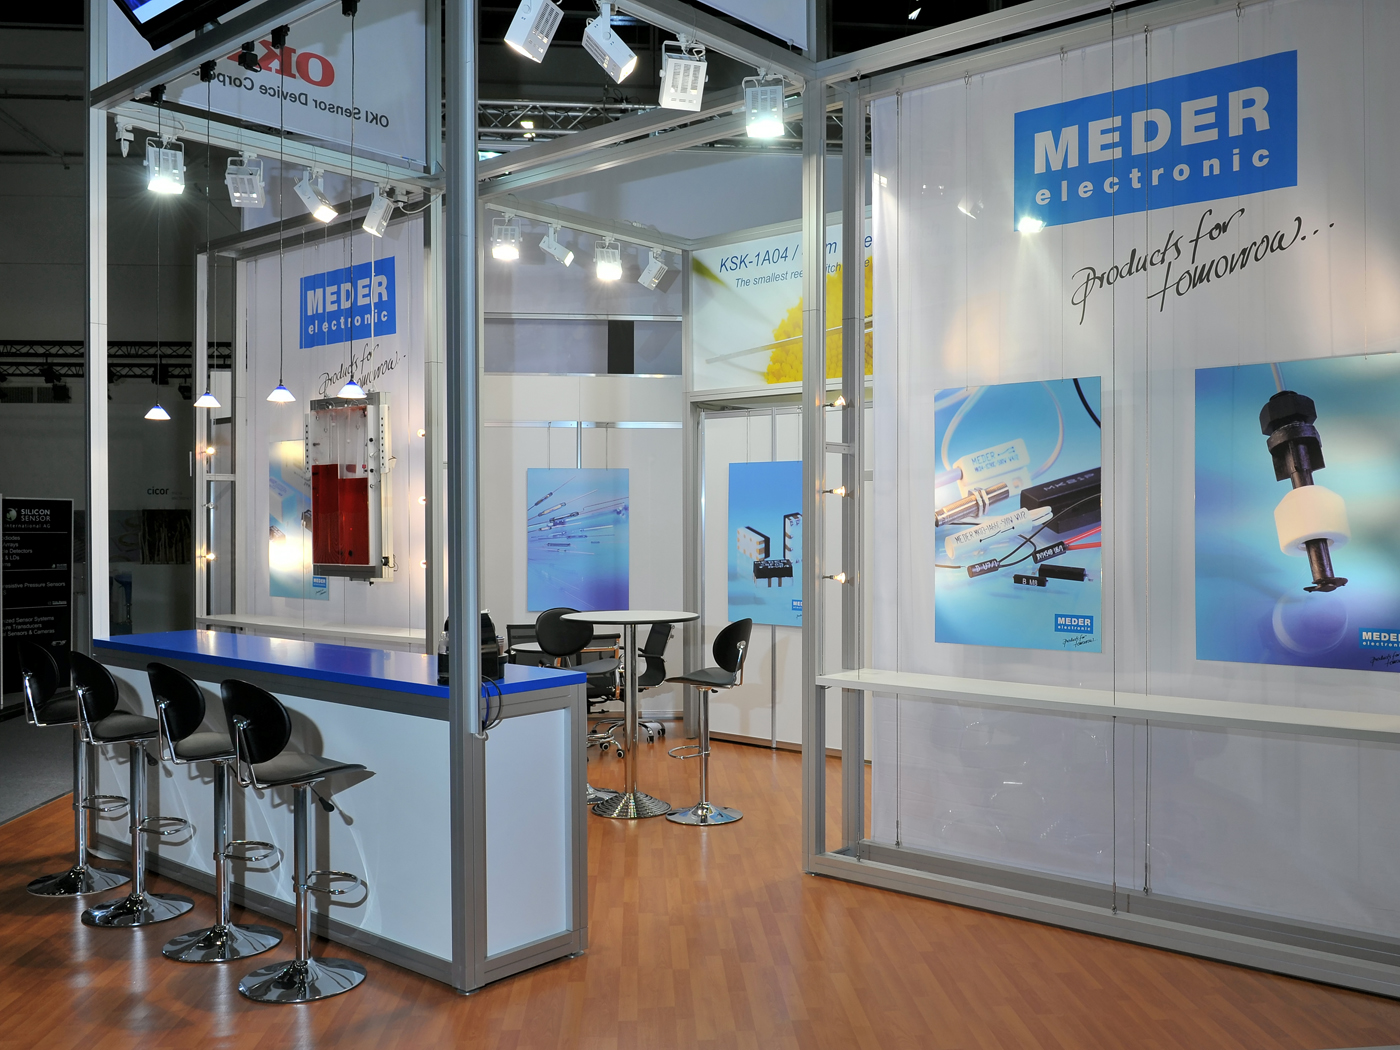 FX Design - Messestand - Meder electronica 2010